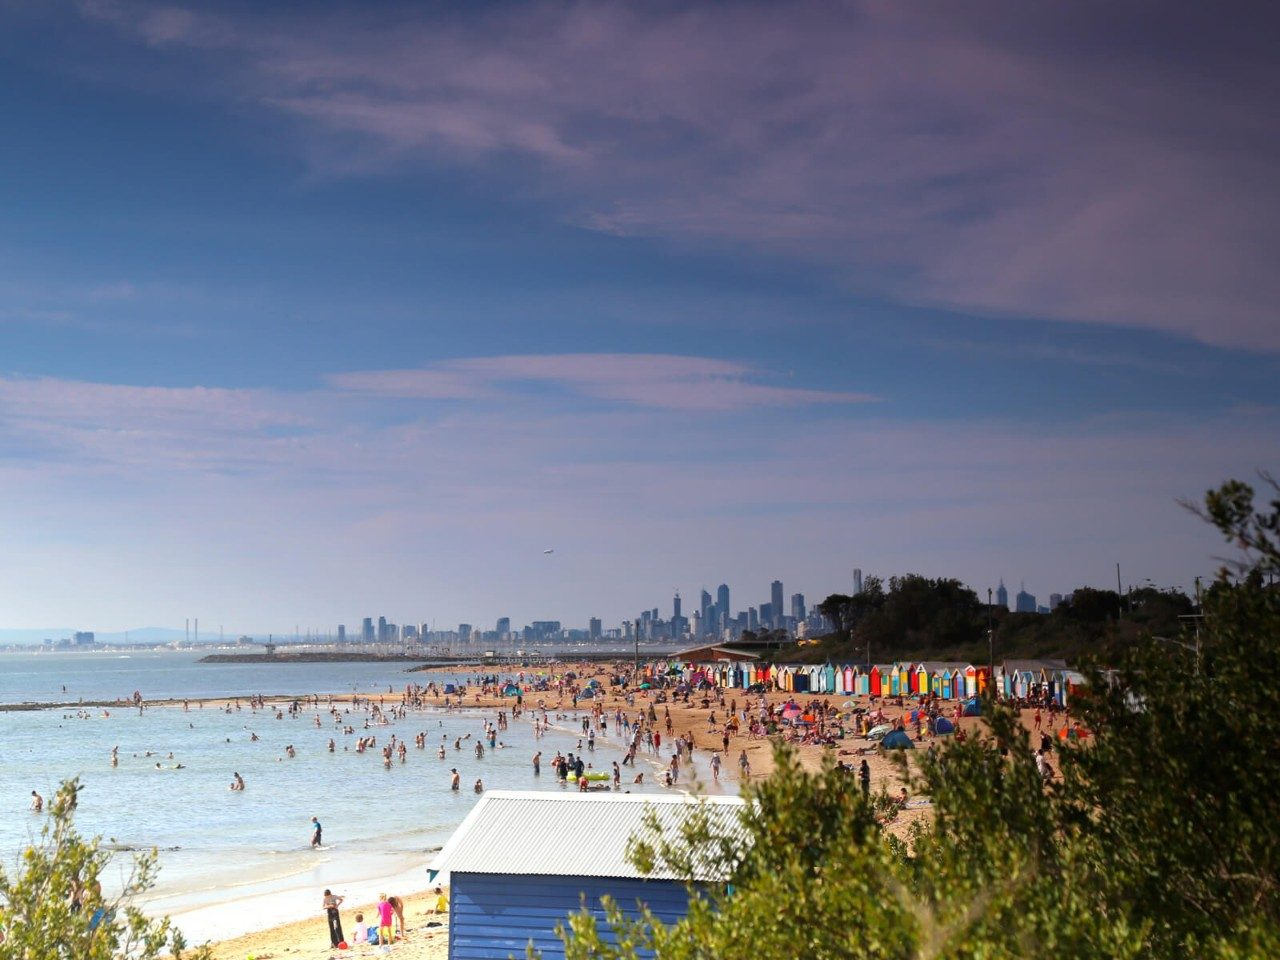 brighton-beach-melbourne-things-to-d-_thinkstock.jpg